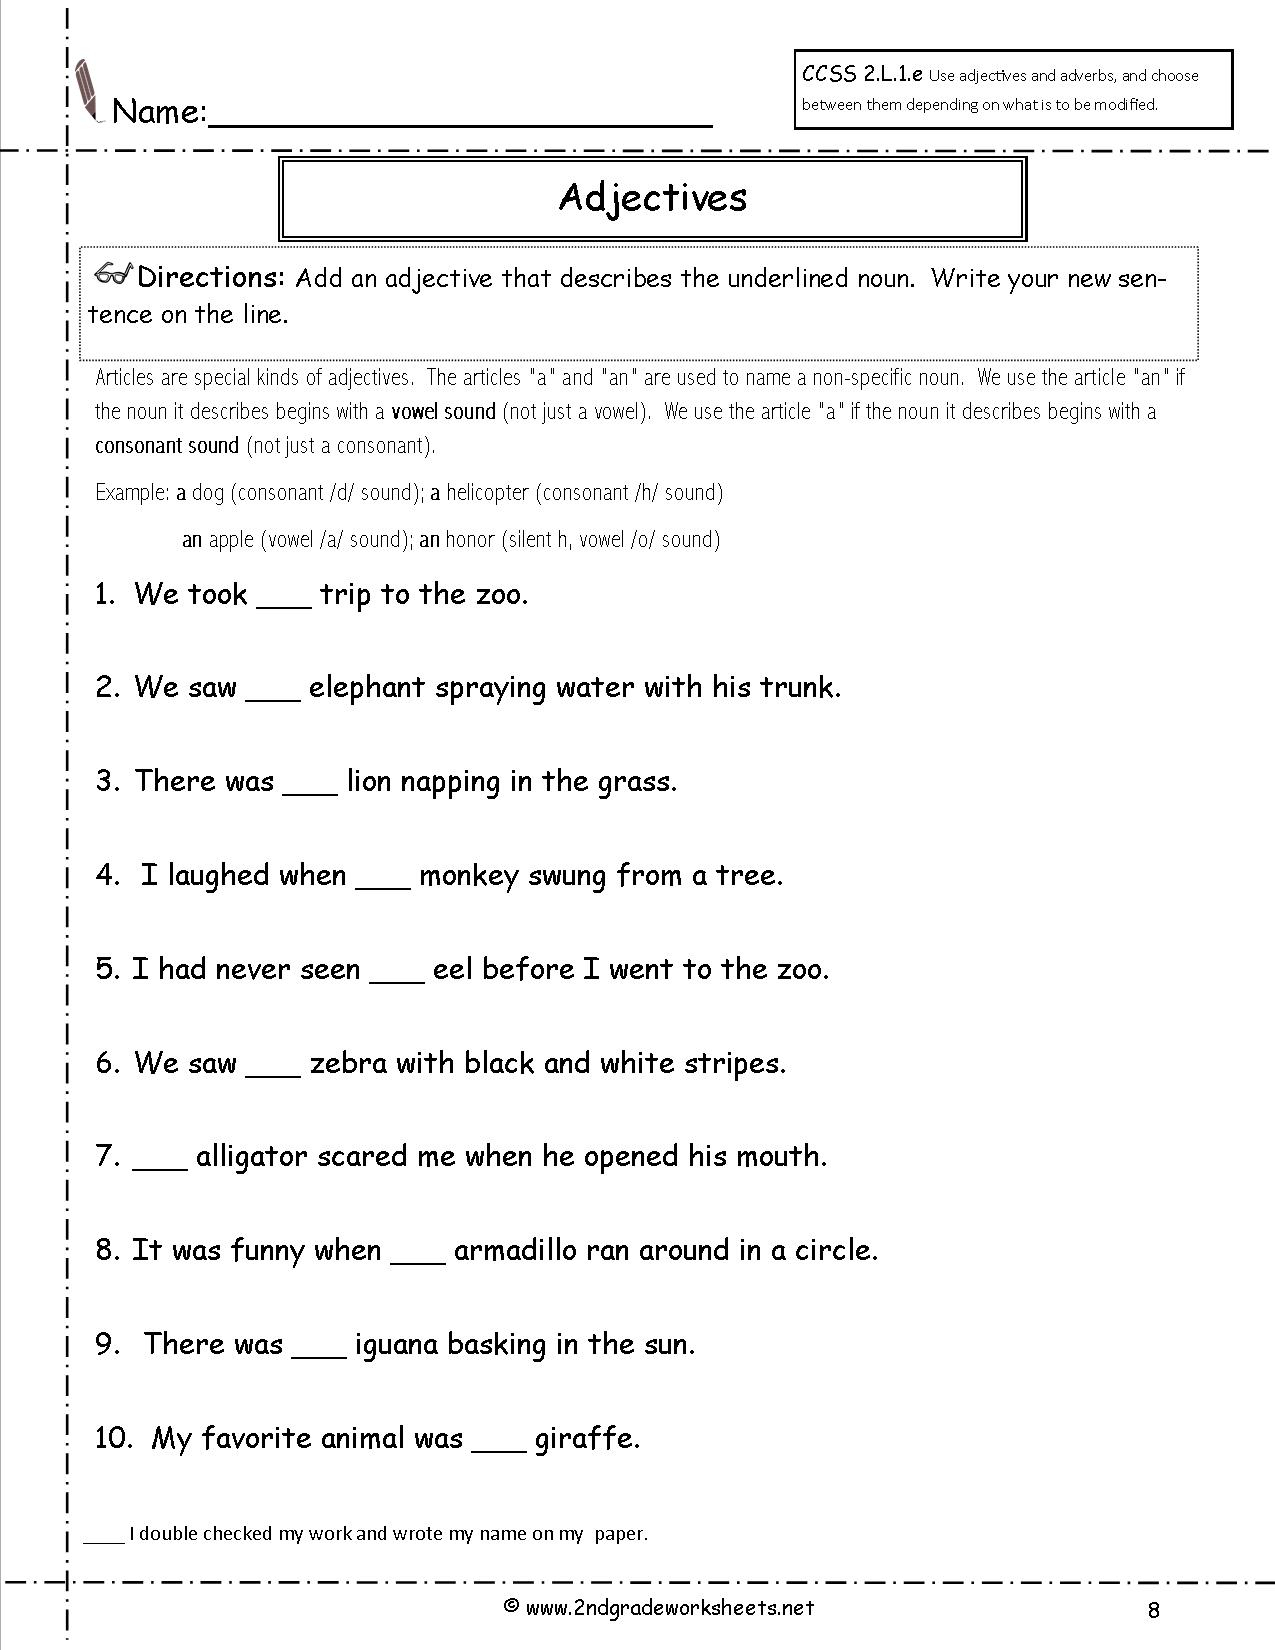 Free Language/grammar Worksheets And Printouts | Printable English Worksheets